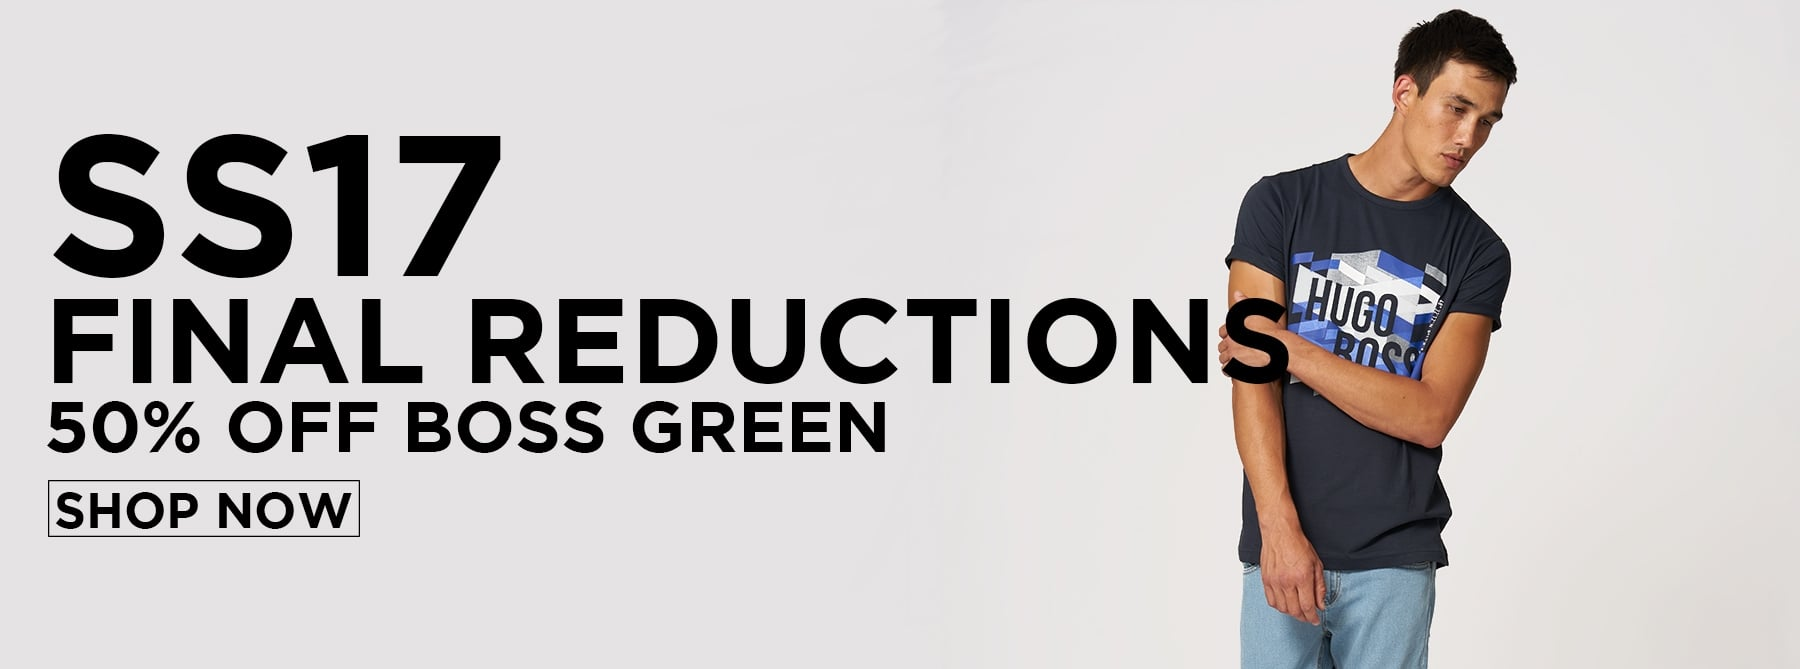 Stuarts London Stuarts London: Sale up to 50% off Boss Green spring summer collection